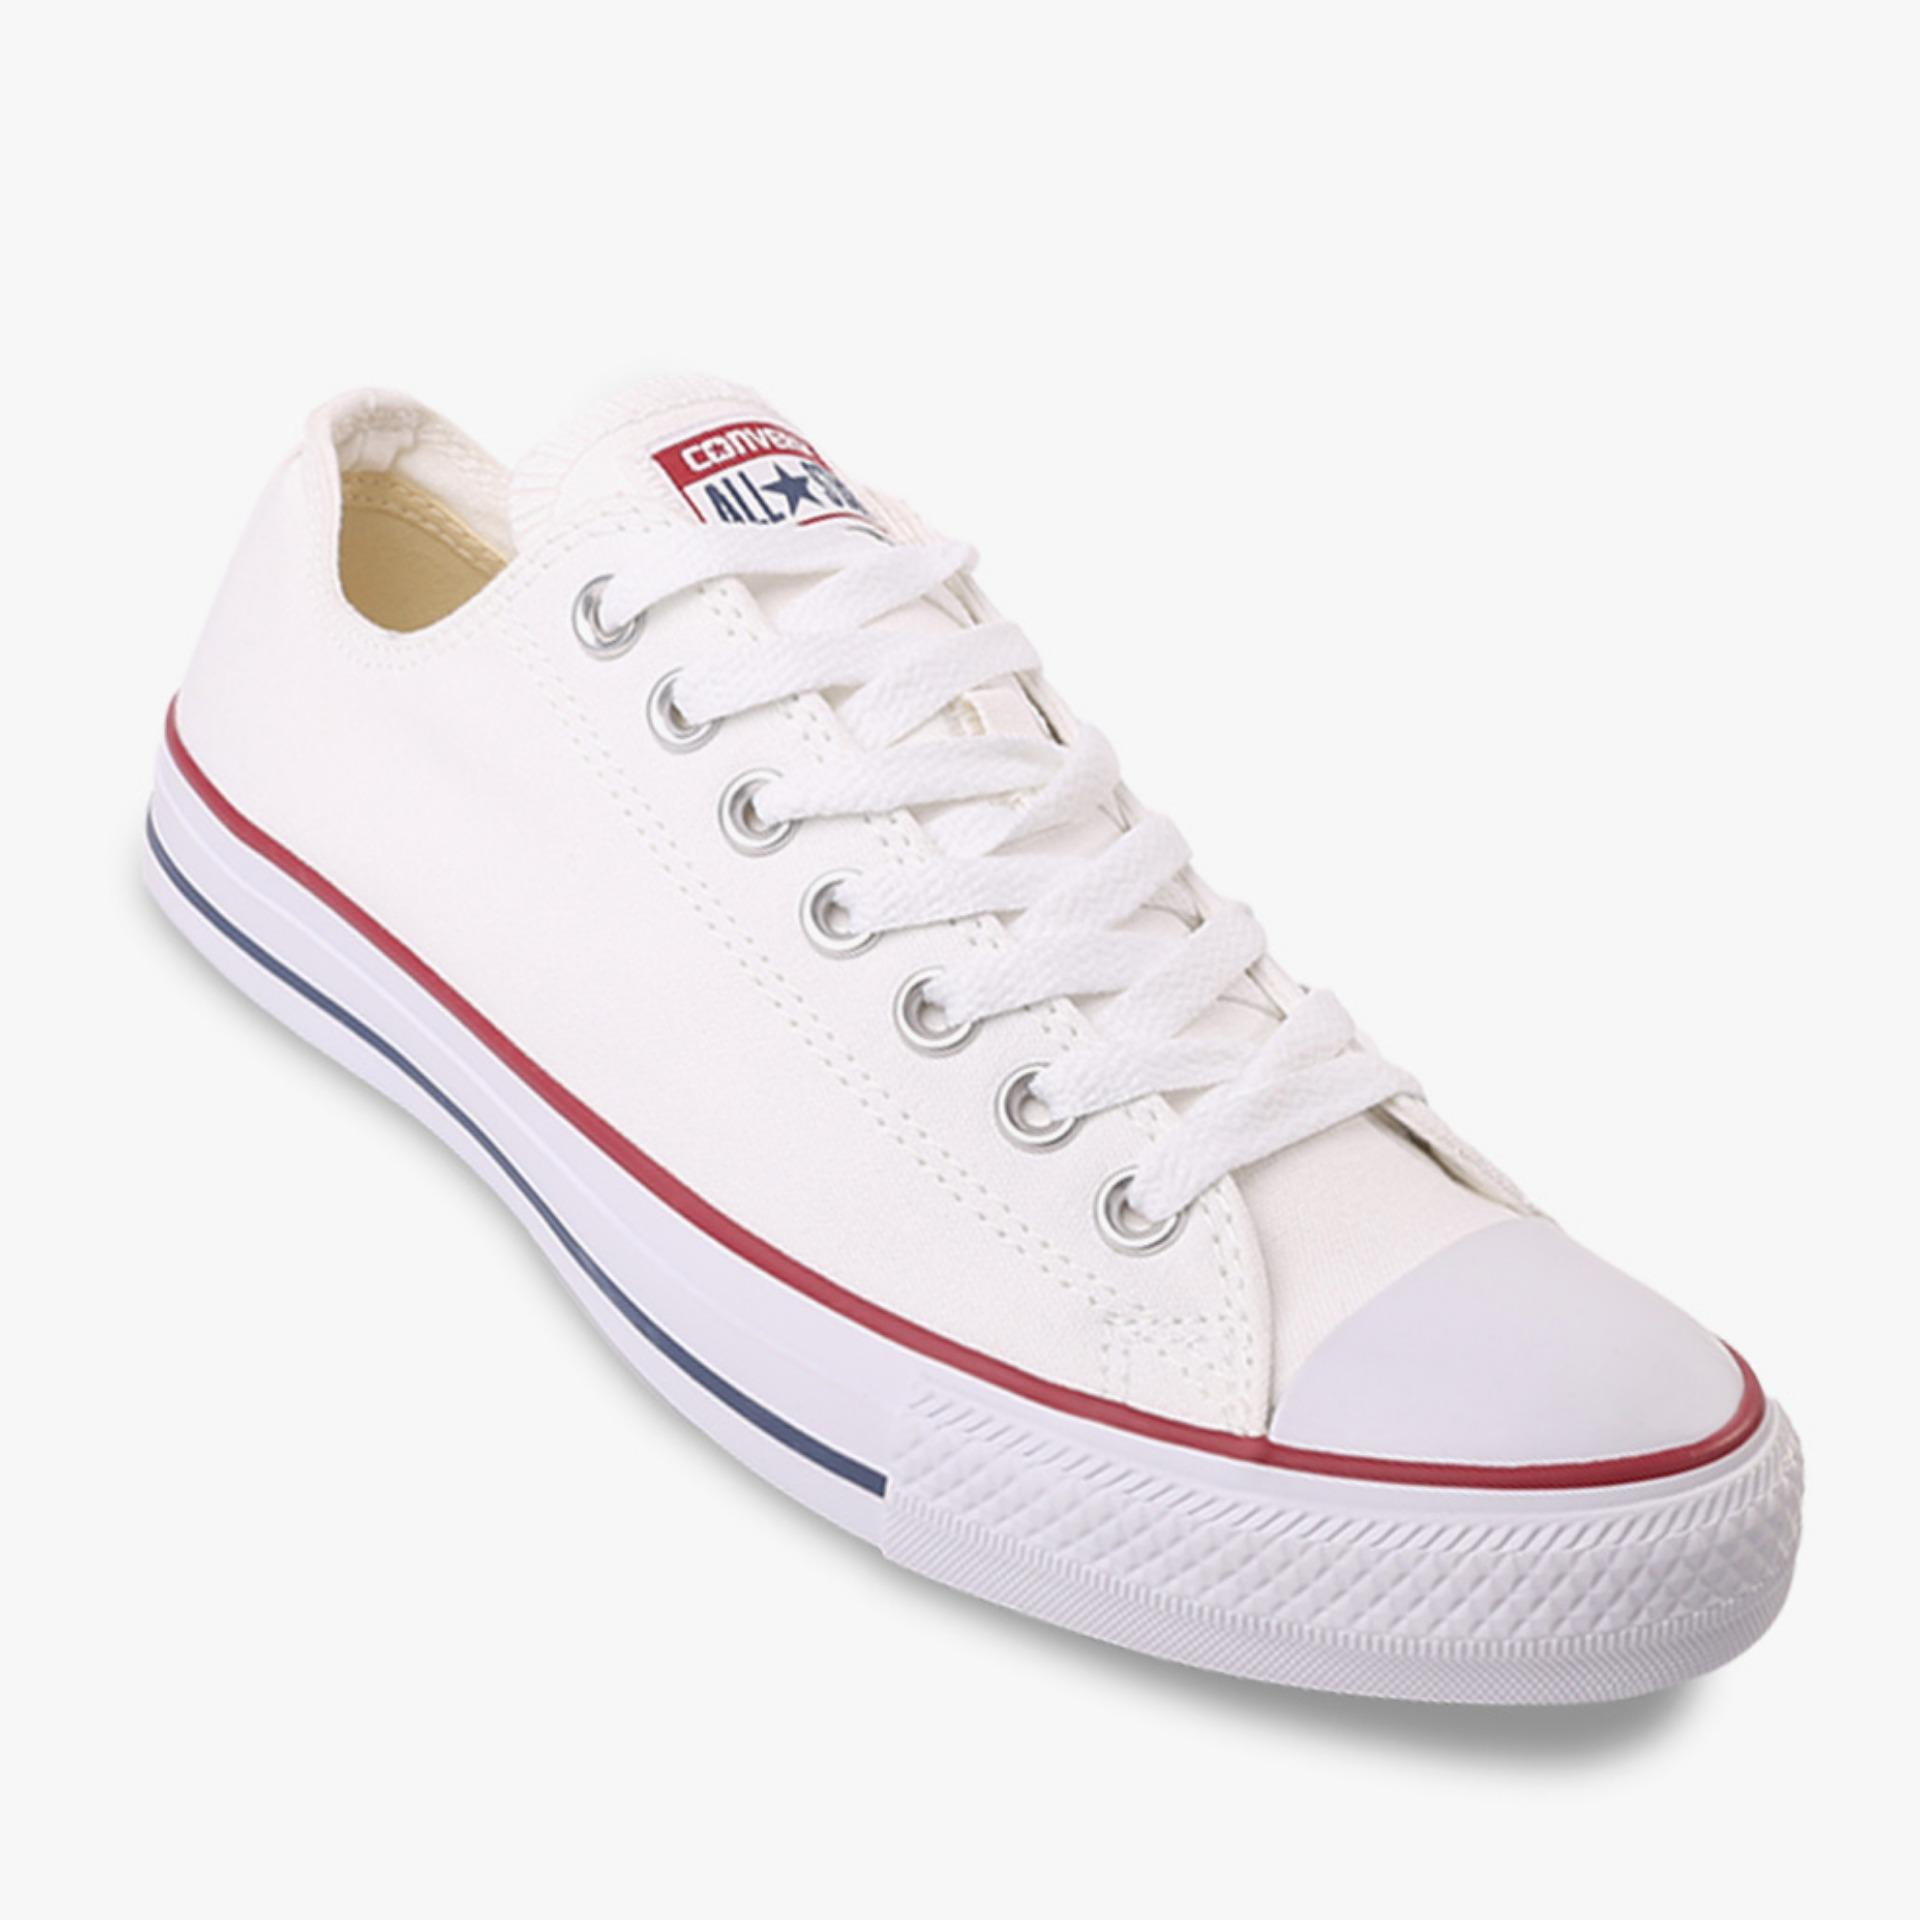 Converse Chuck Taylor All Star Ox Men's Sneakers - Putih